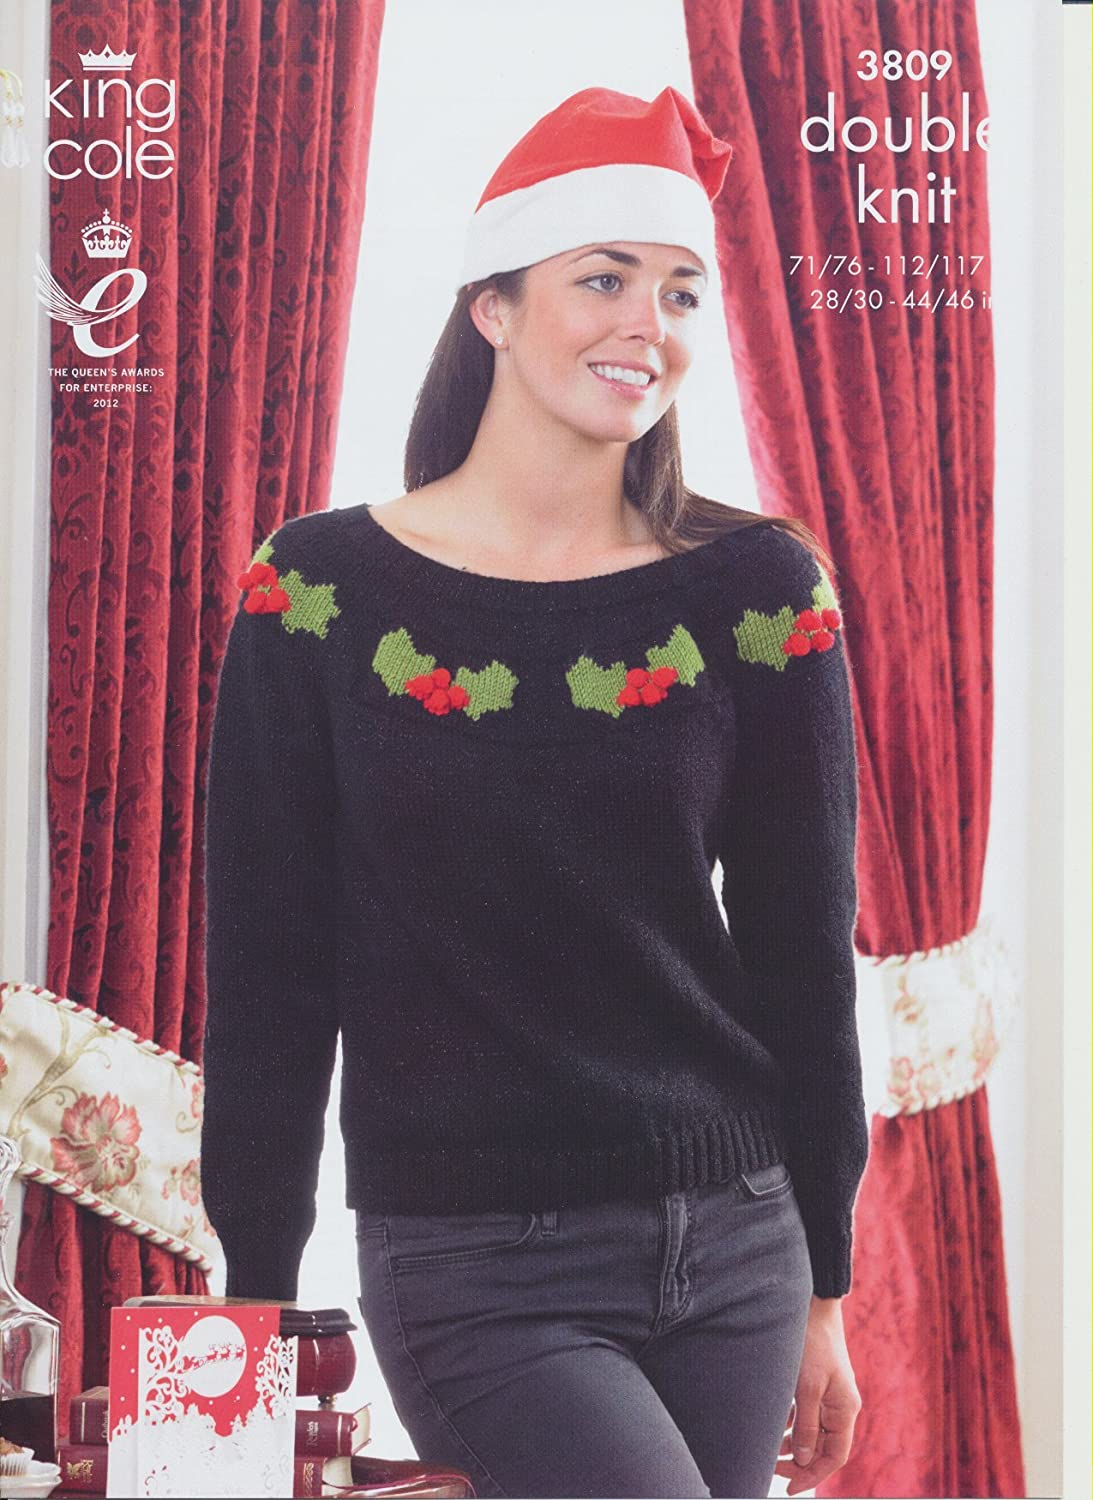 King Cole Ladies & Mens Double Knitting Pattern Womens Christmas Sweater Holly Candycane 3809 by King Cole